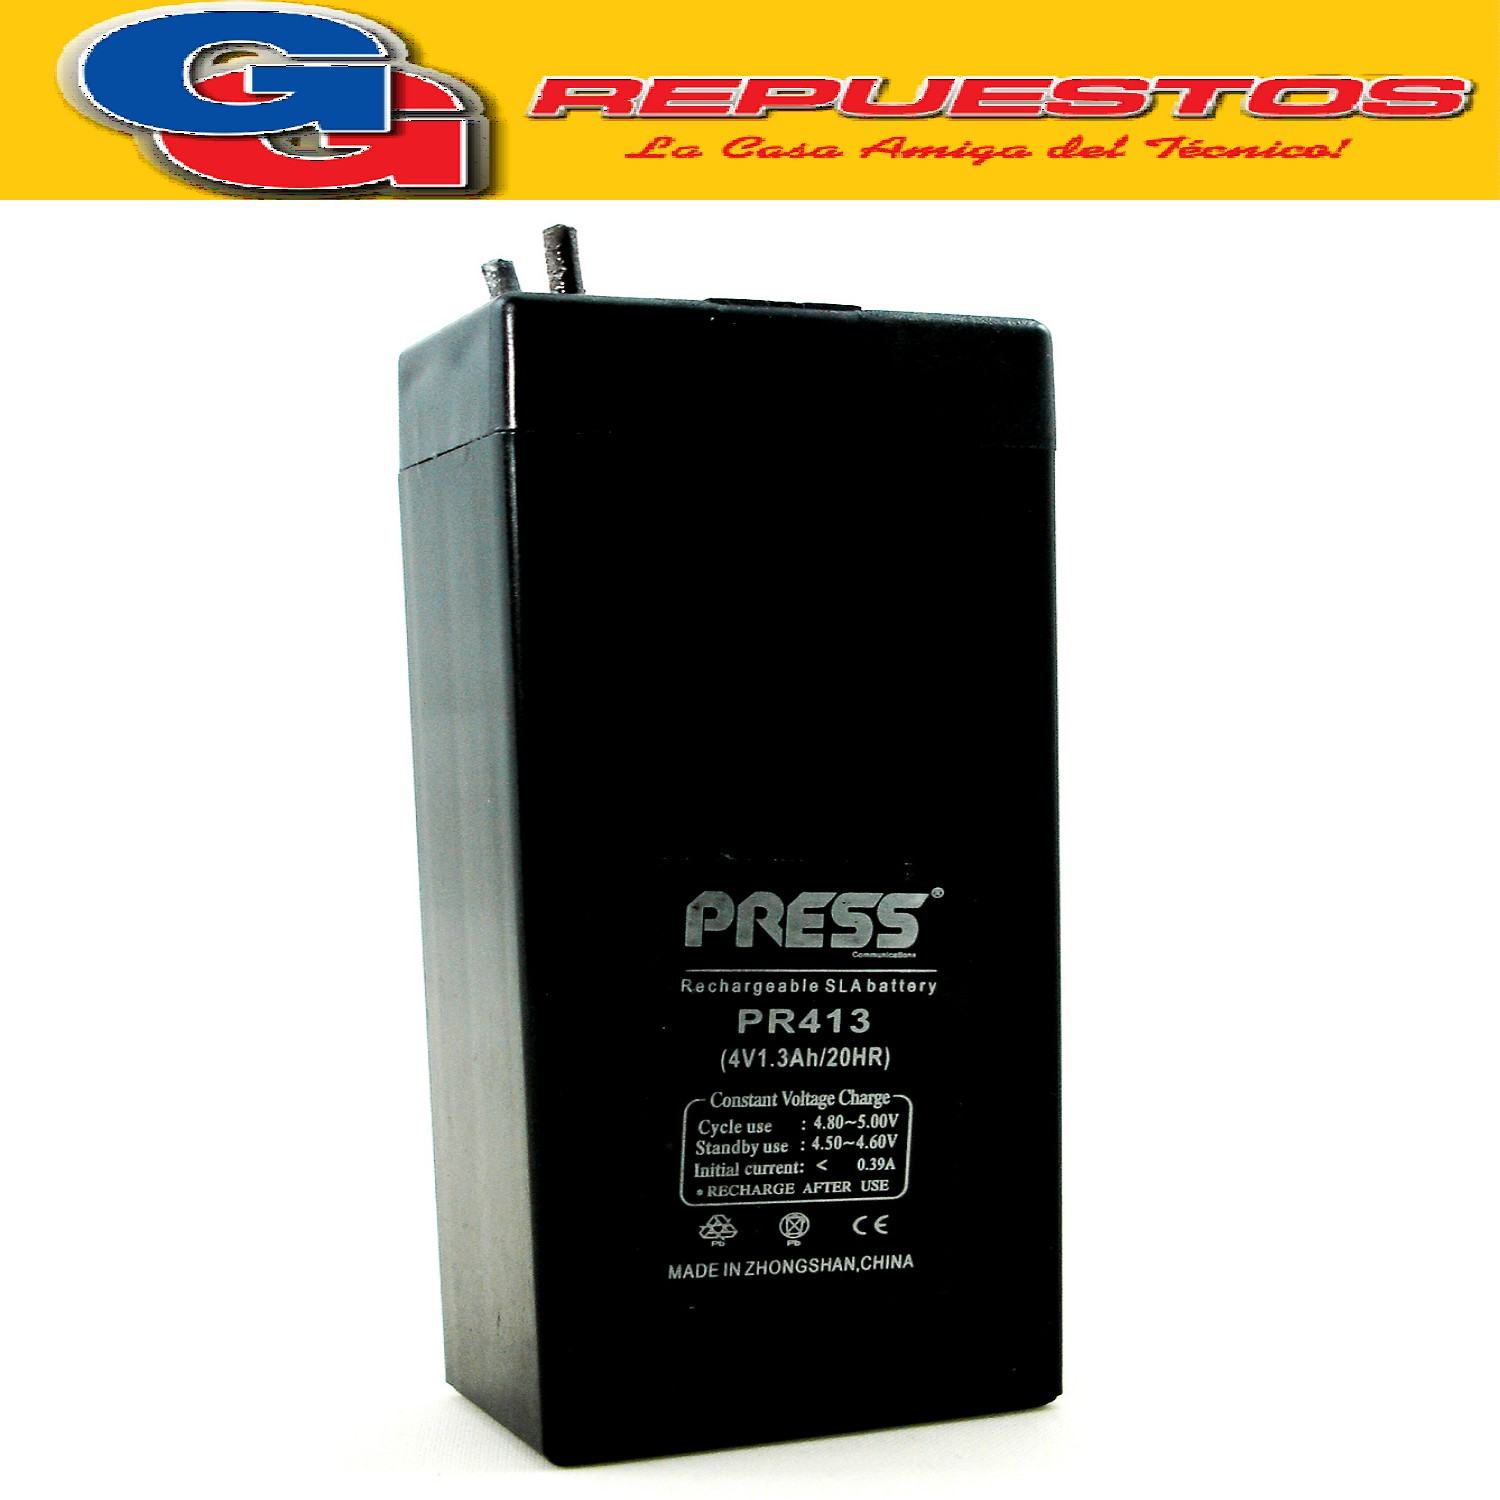 Bateria de Gel Recargable de 1.3A de capacidad y 4V. Marca PRESS 1.3A 4V Largo:35 MM - Ancho:22 MM - Altura:90 MM - Tipo de conector: cables